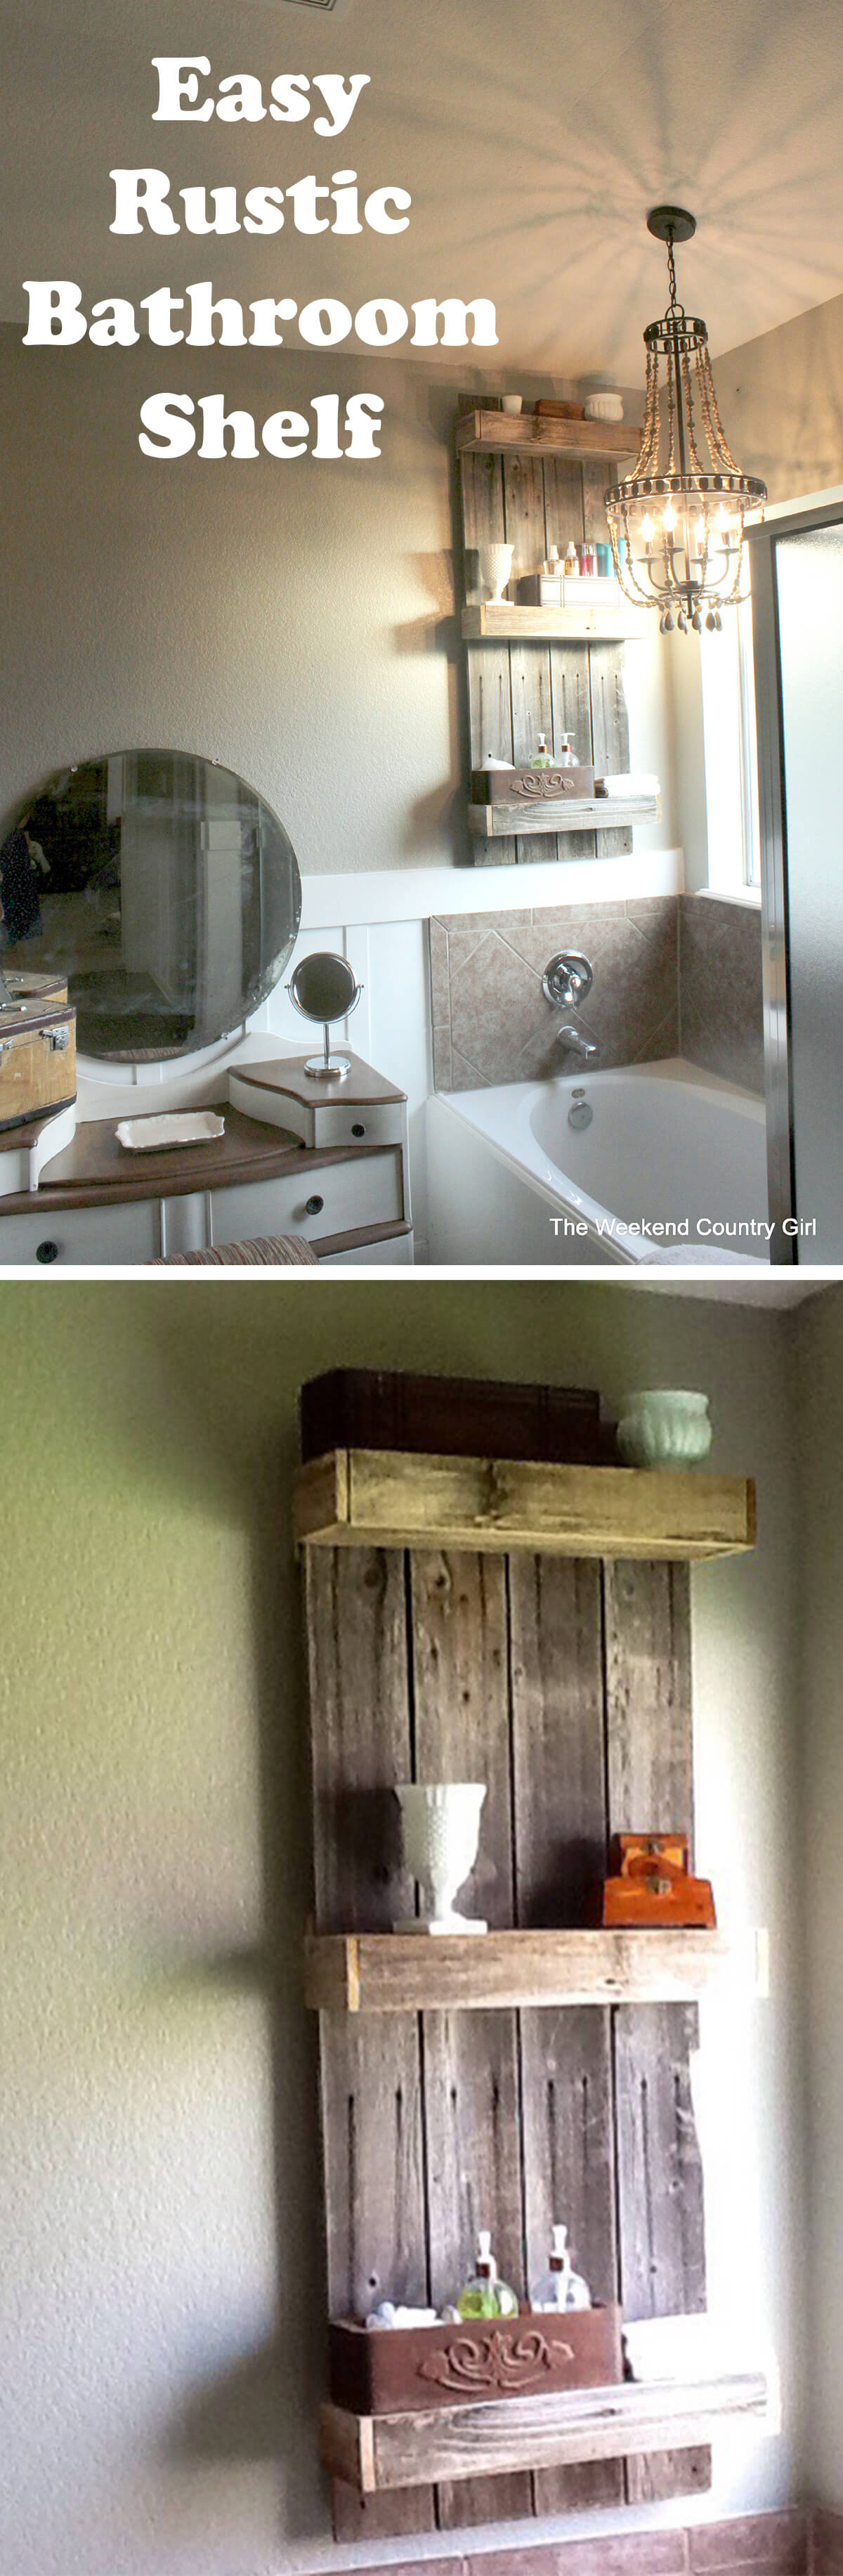 clever bathrooms with n o facebook huffpost hacks your big problems shelving for small shelf bathroom ideas